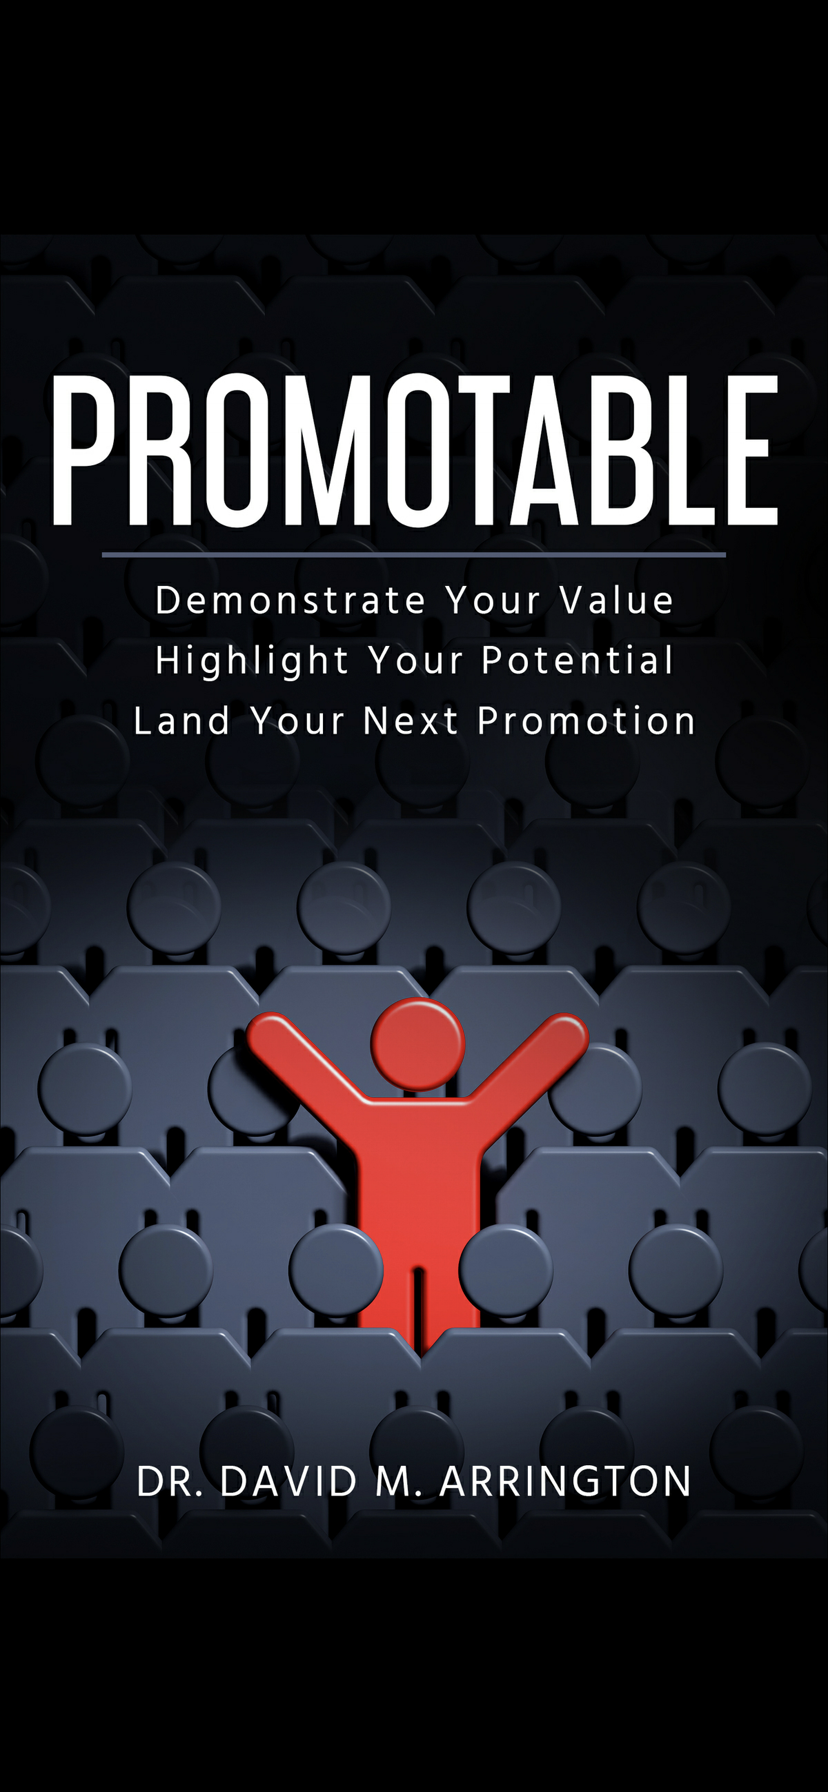 Promotable is a quick read that doesn't drone on and on. It pulls no punches and gets straight to the point and quickly tells you how you can become more Promotable in your career. It's also filled with suggestions that can be used right away.